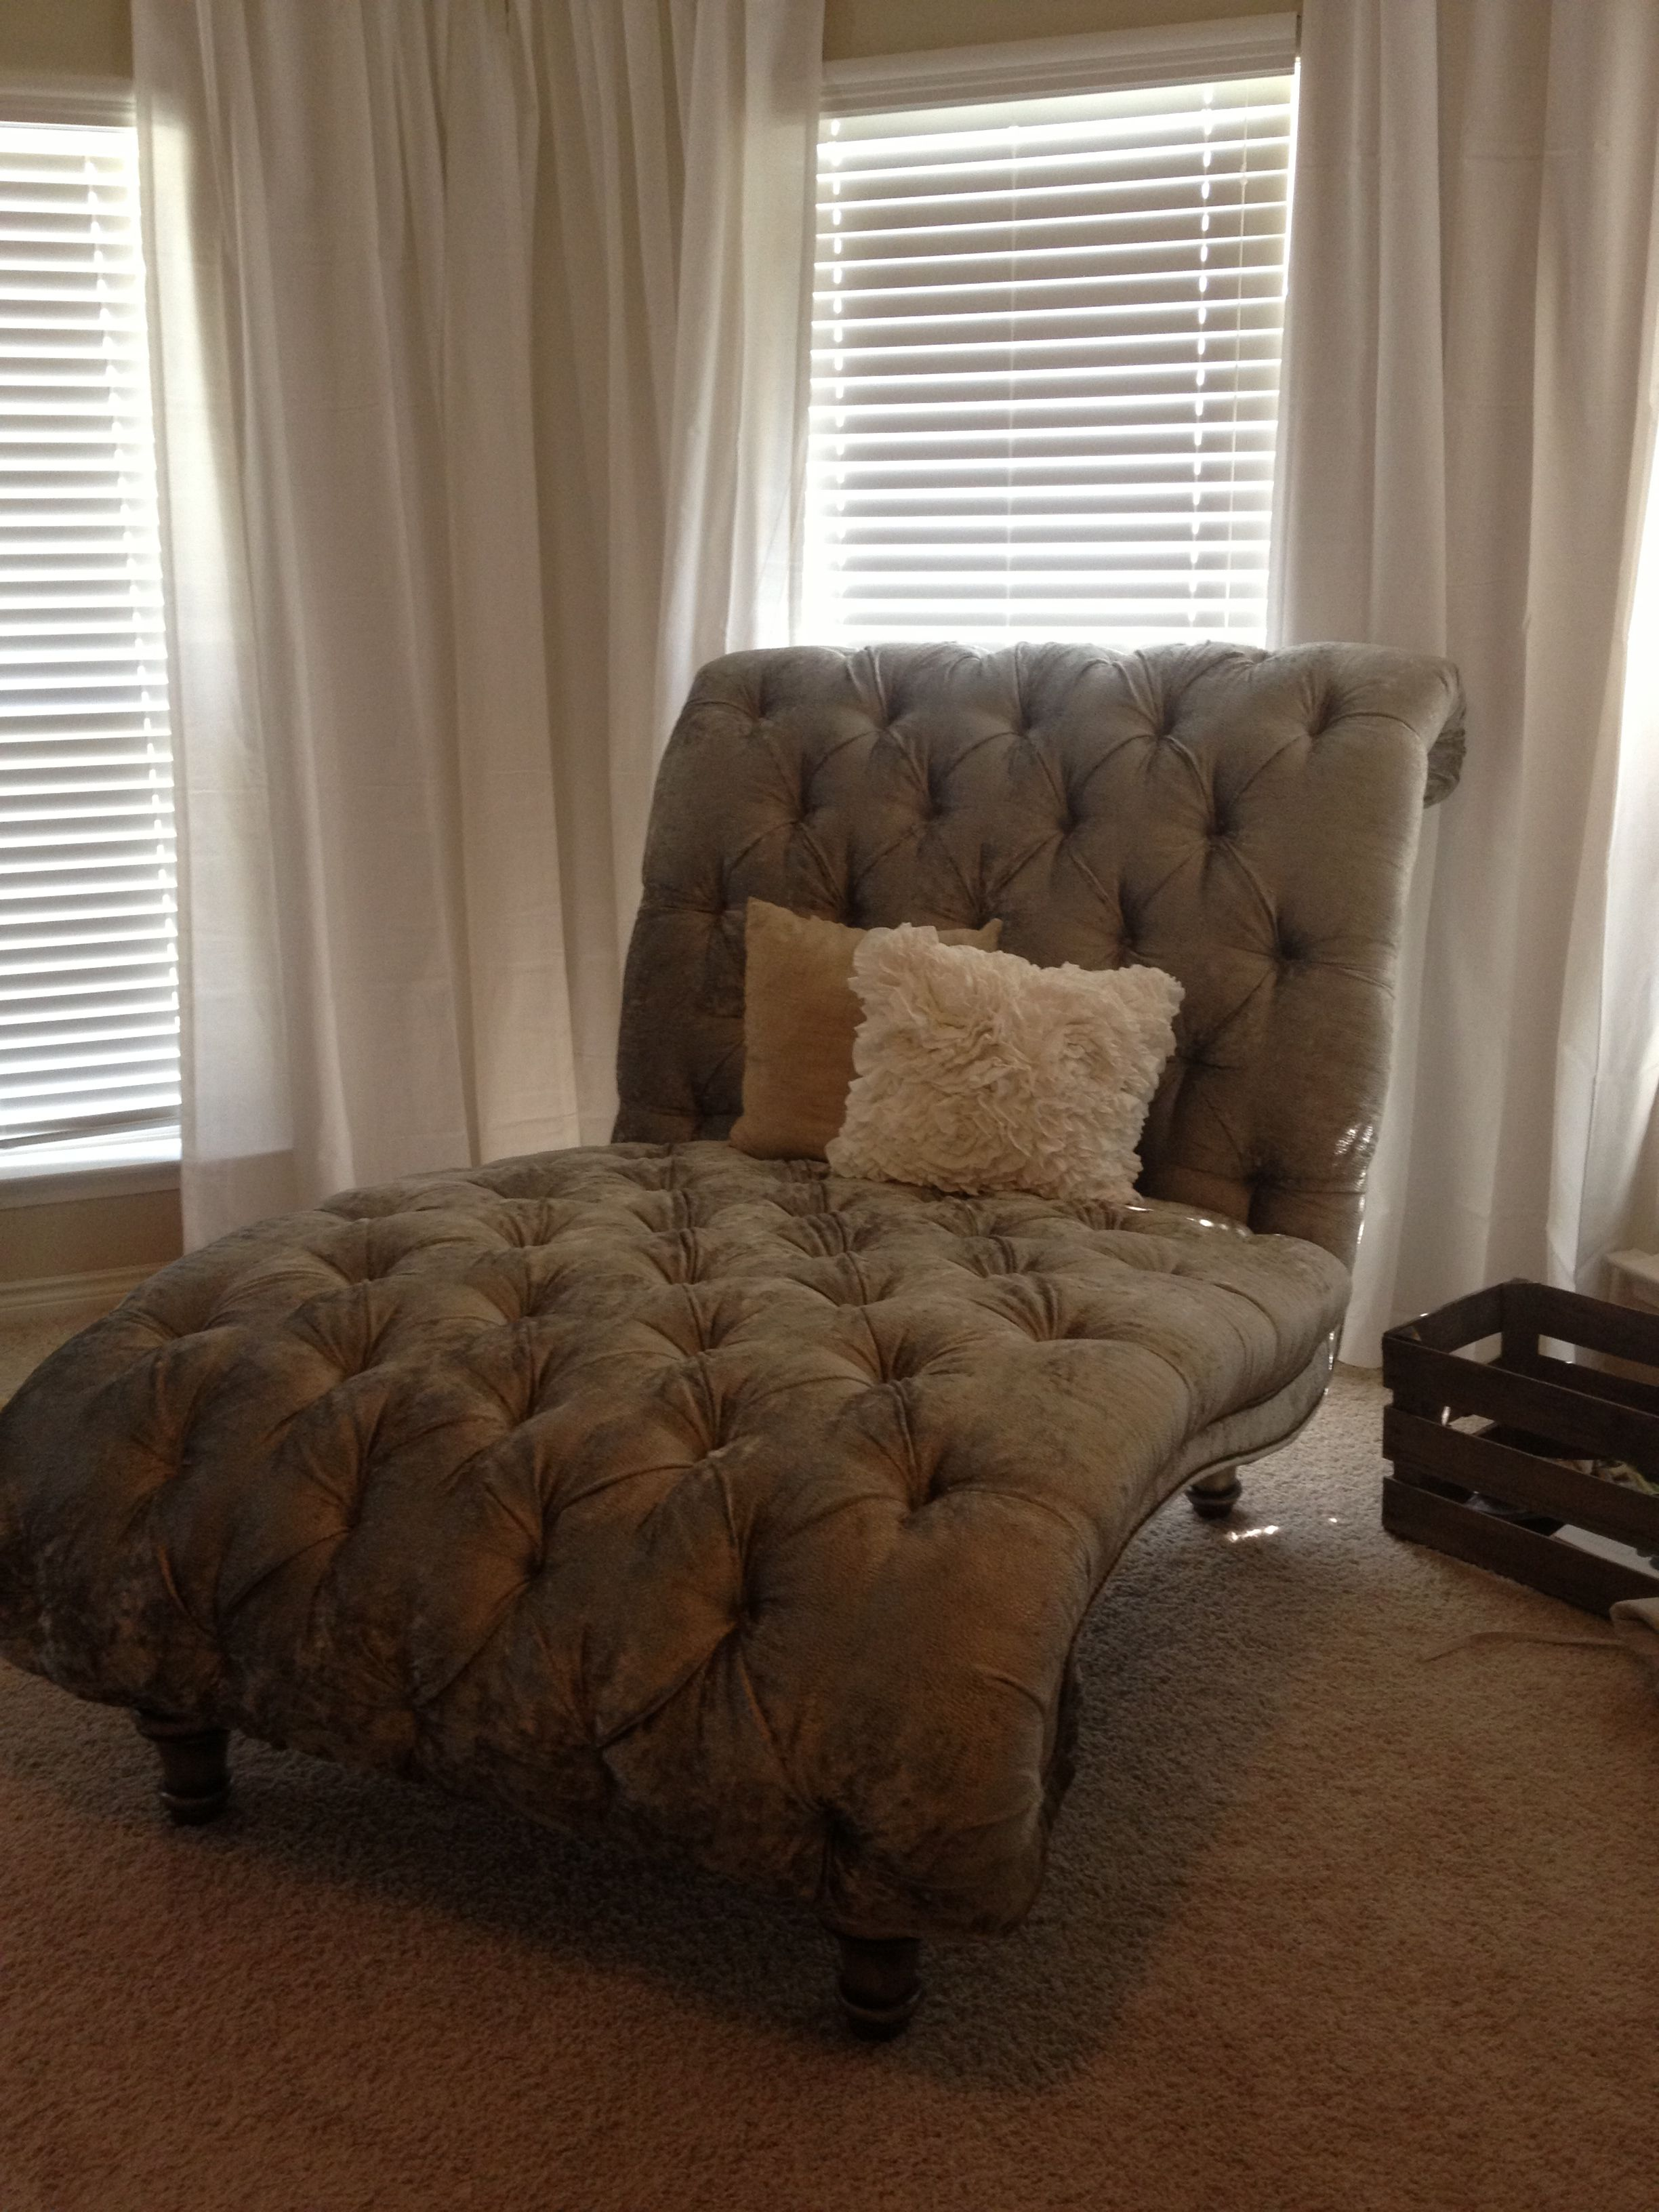 Tufted double chaise lounge chair in our master bedroom for Chaise longue double exterieur